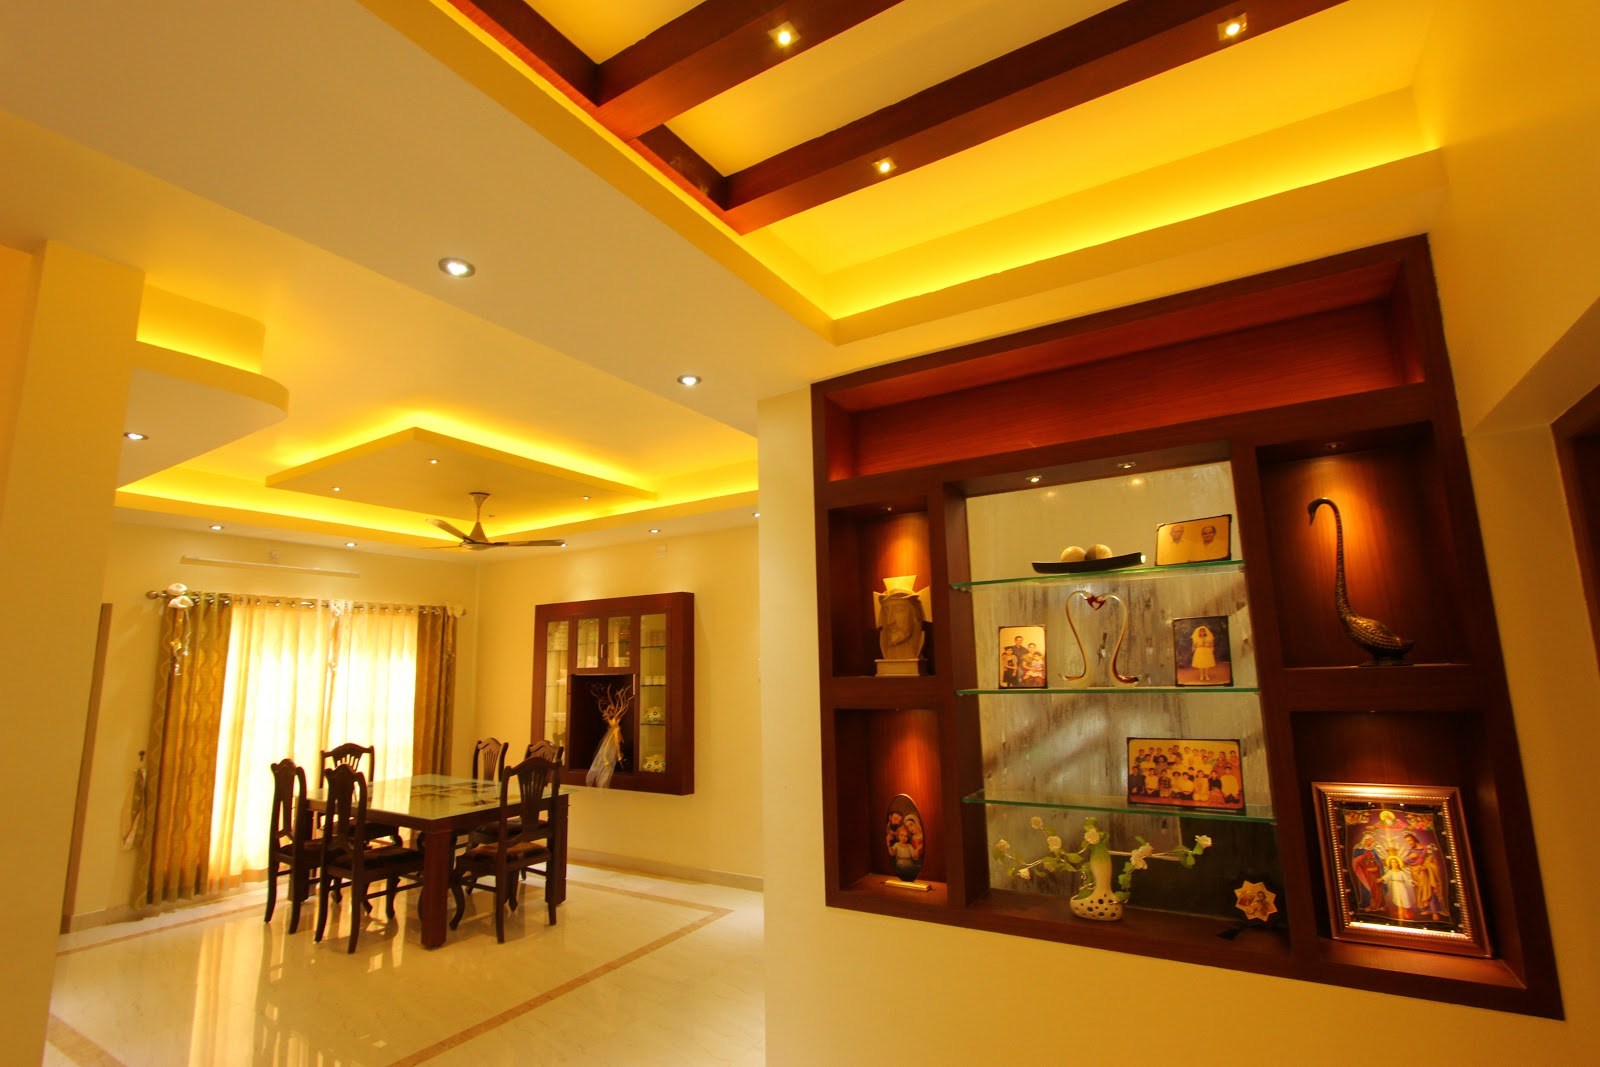 Shilpakala interiors award winning home interior design for Home design interior design